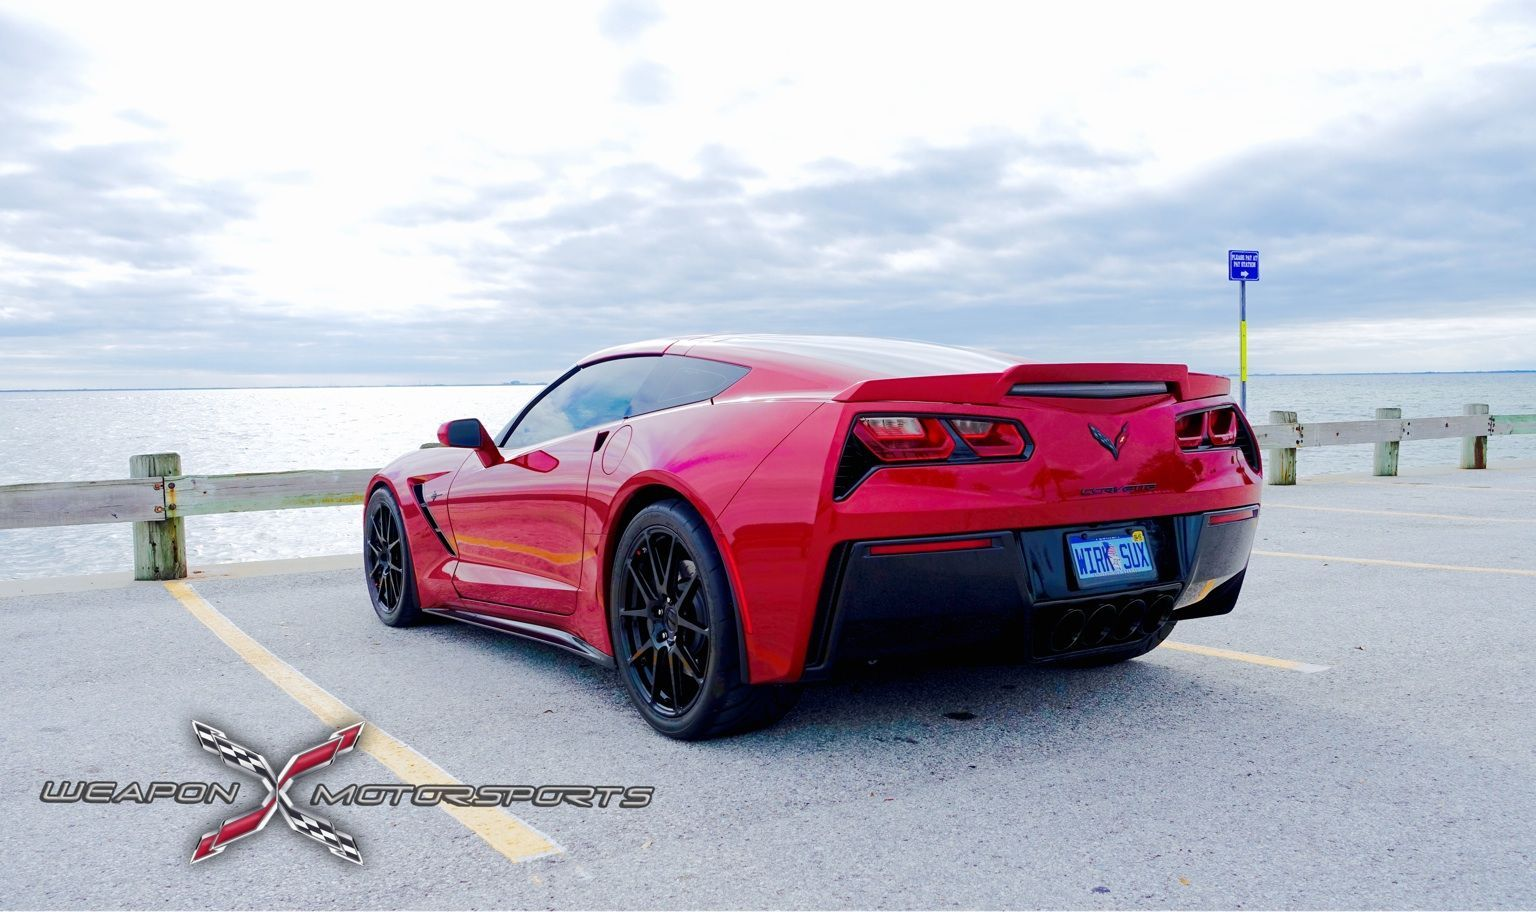 2014 Chevrolet Corvette Stingray | Brian's 600HP C7 Corvette Stingray on Forgeline GA1R Wheels